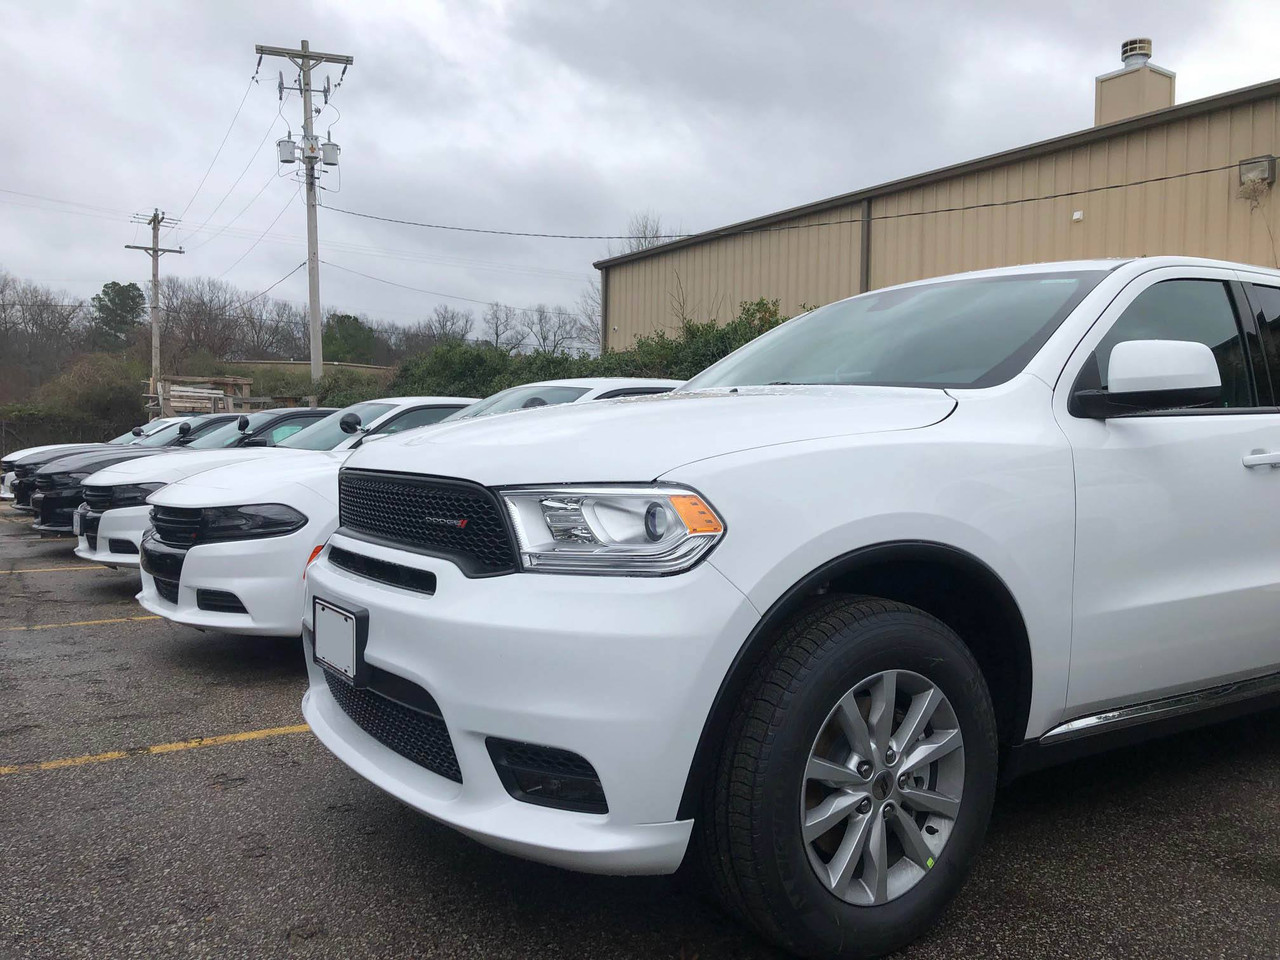 New 2019 White Dodge Durango Police Package V6 AWD All-Wheel Drive, ready to be built as a Marked Patrol Package, choose any color LED Lights, + Delivery